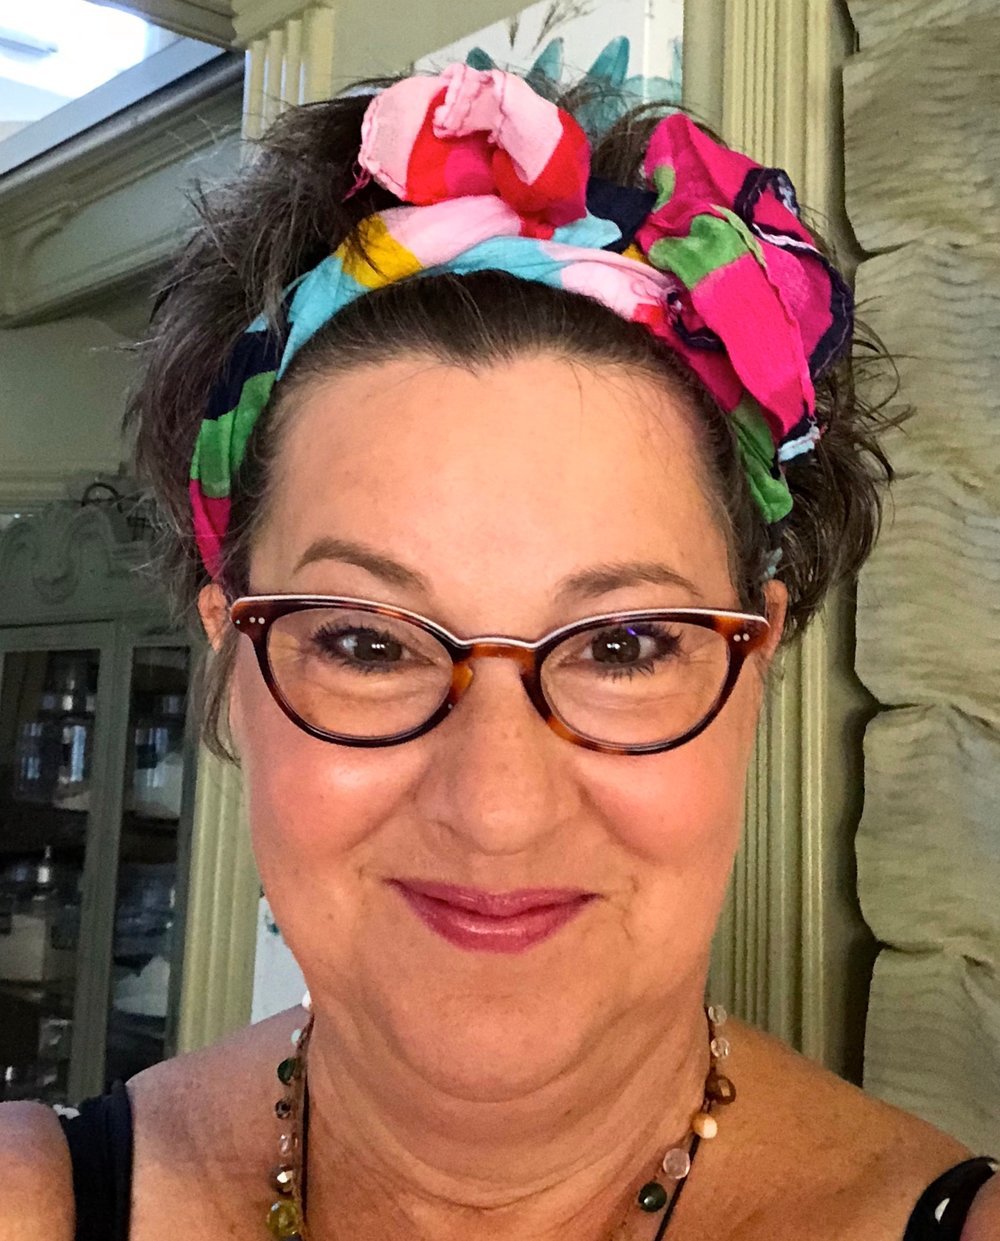 Why, Hello There! - I'm Patty Middlebrooks...Accidental Artist,Eternal Optimist and Lover of People and Life's Grand Adventures.I bet you're wondering...